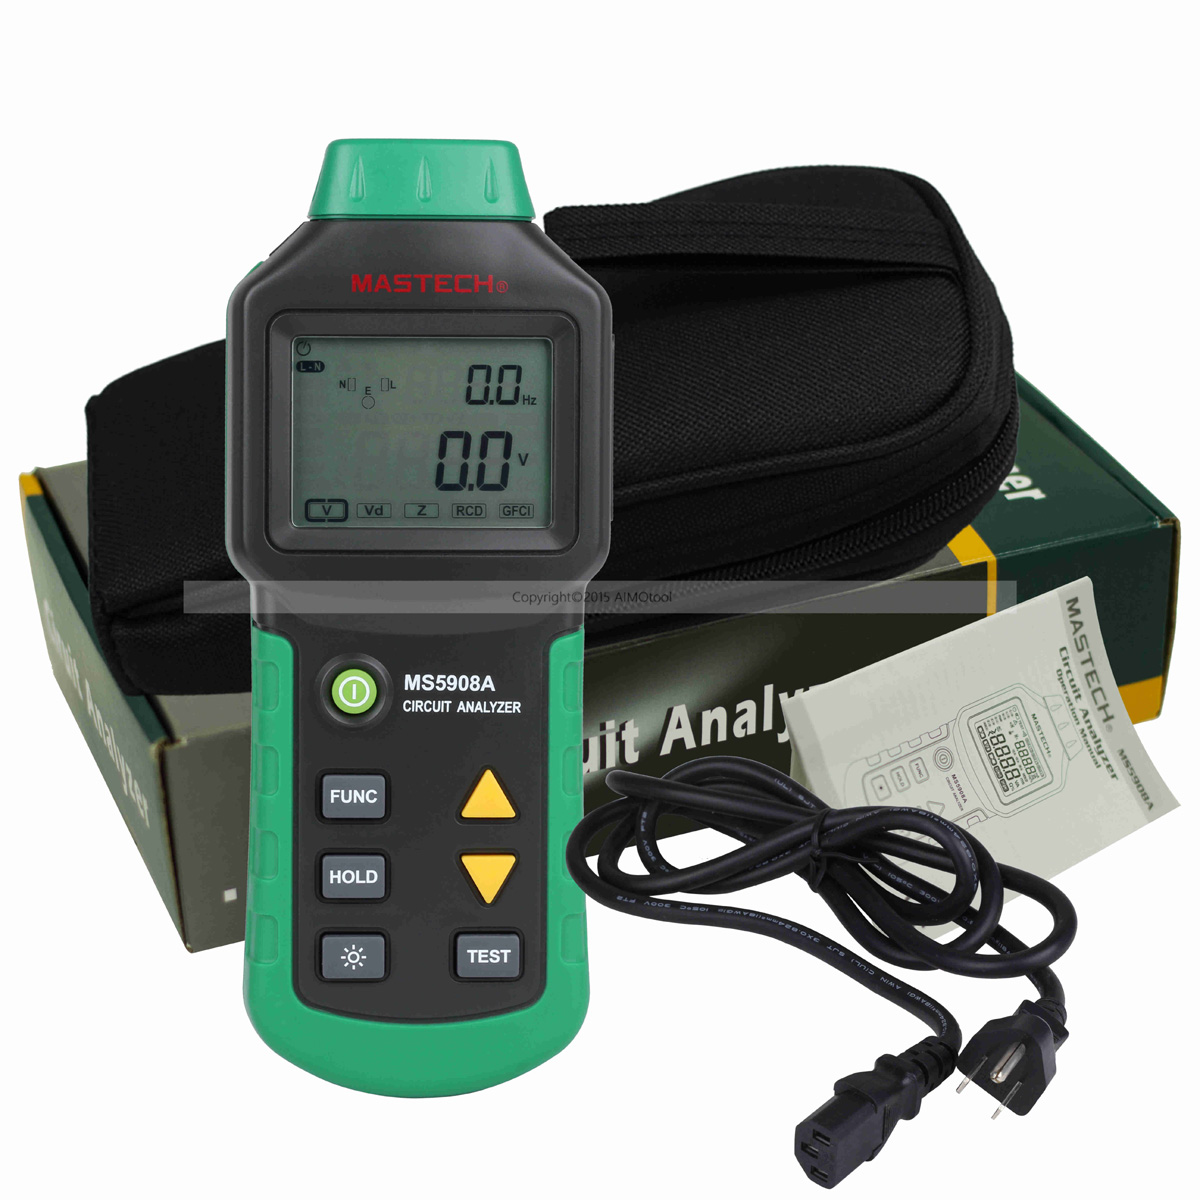 все цены на  M111 Mastech MS5908A RMS Circuit Analyzer Tester Compared w/ IDEAL Sure Test Socket Tester 61-164CN 110V or 220V RCD GFCI  онлайн